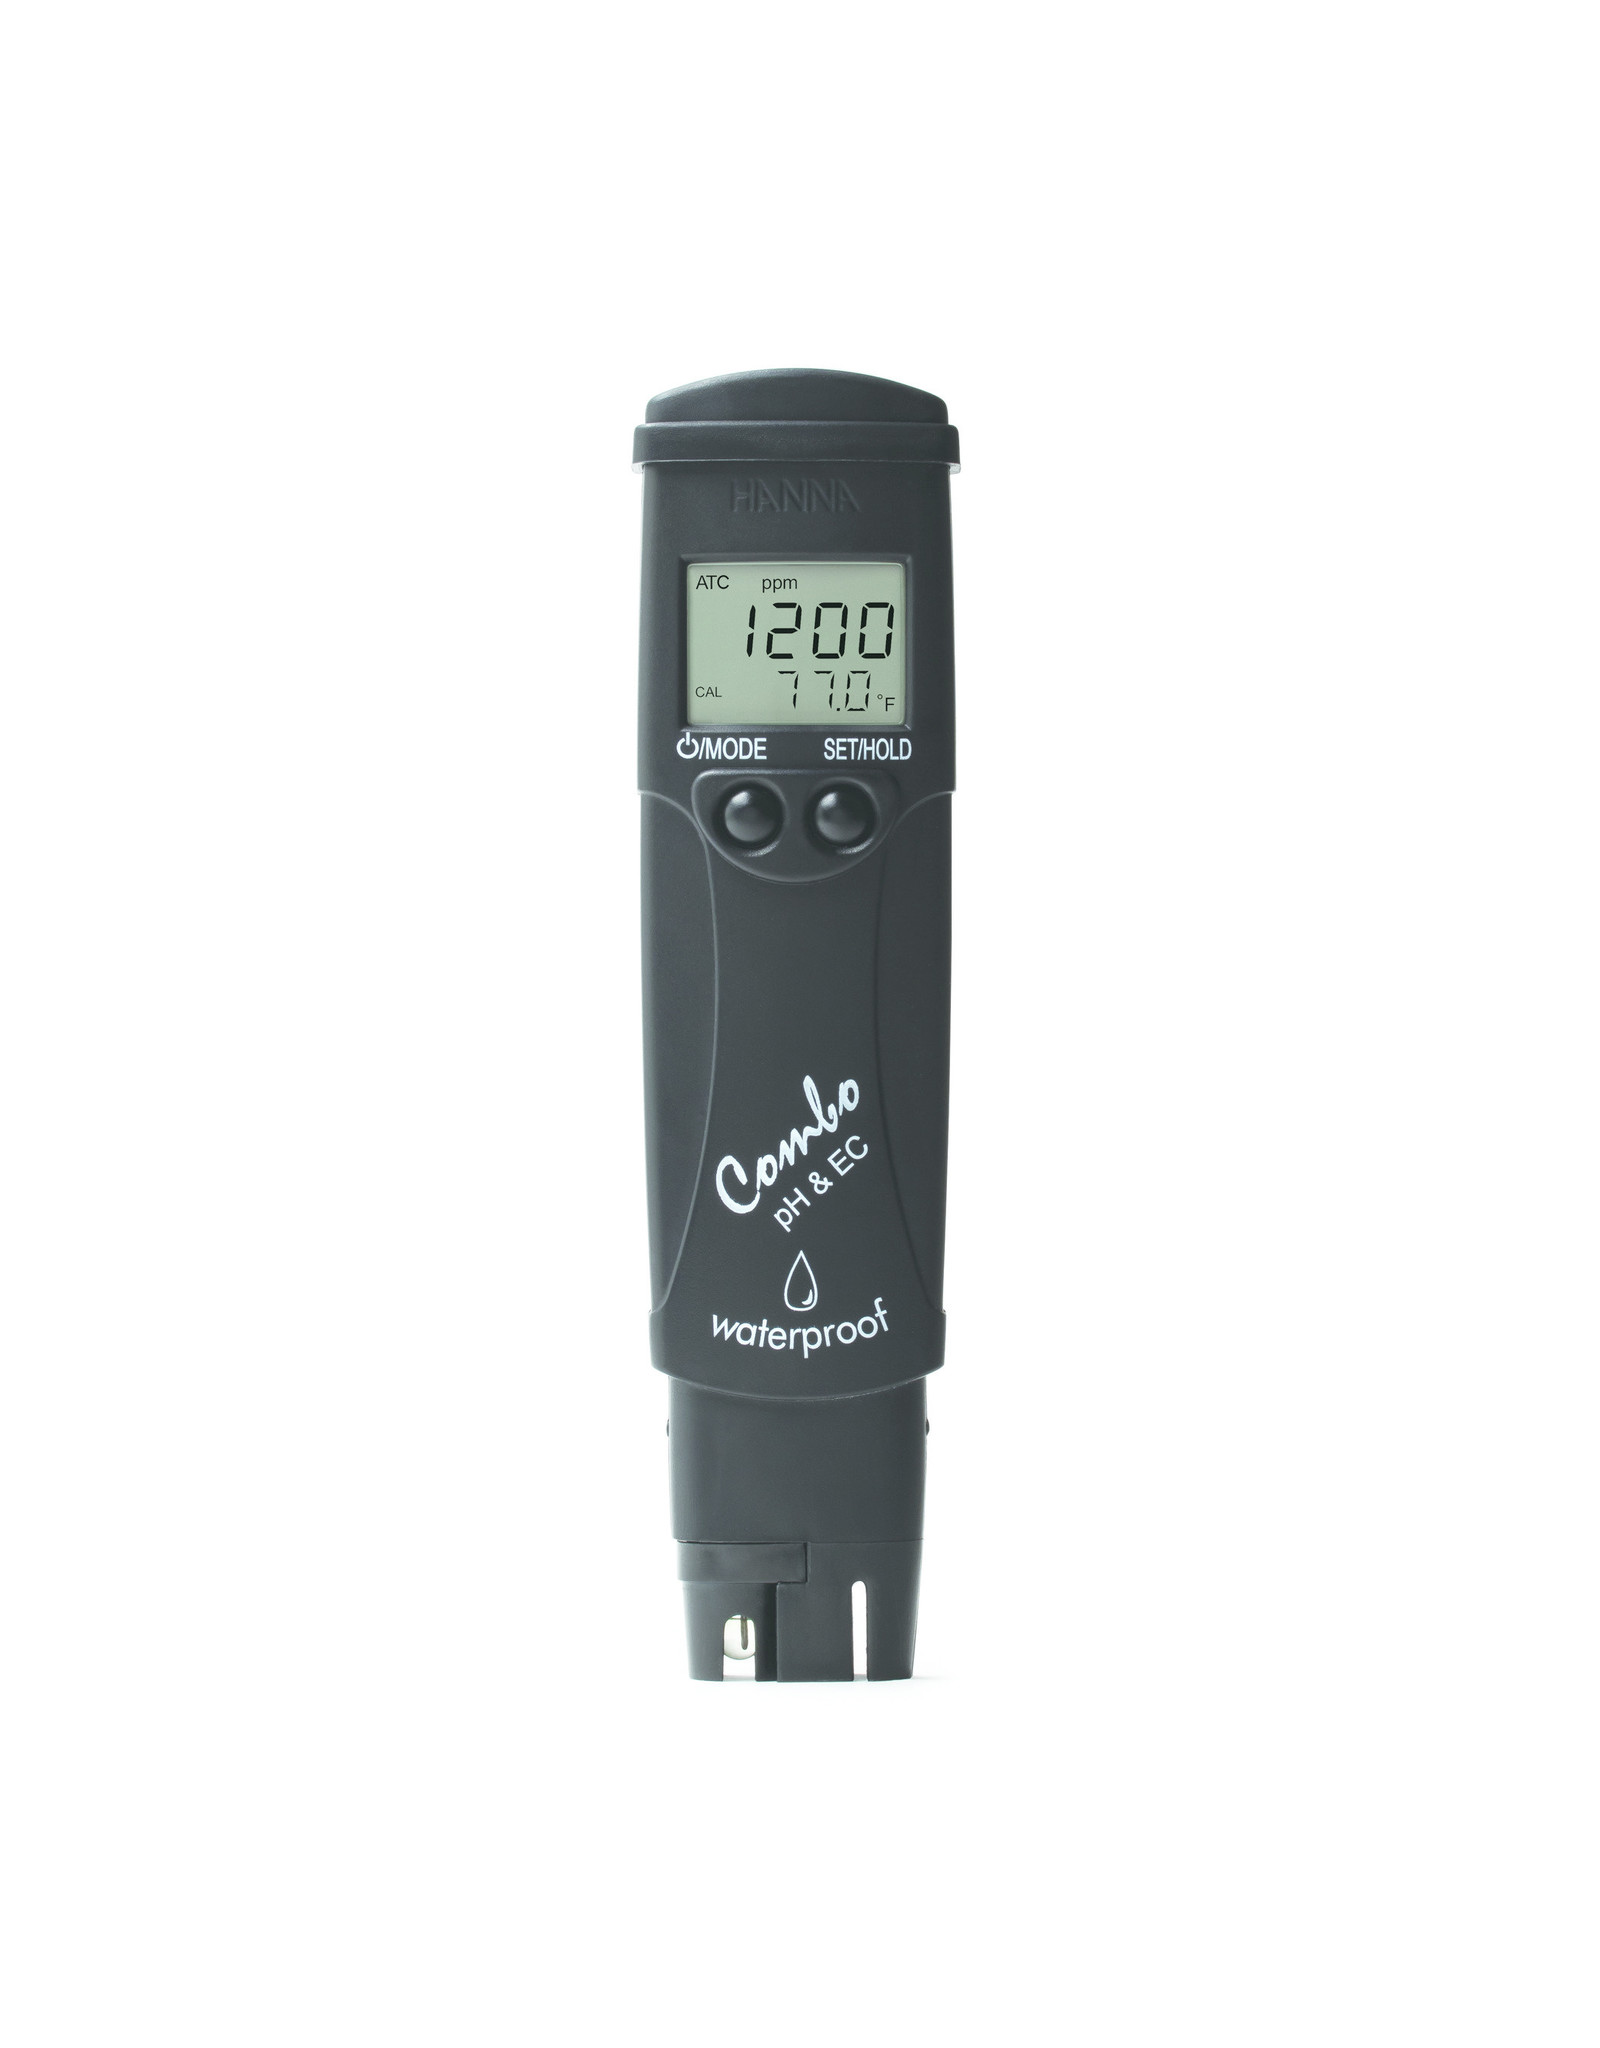 Hanna Instruments HI98130 pH/EC/TDS/temp.-tester, 0-14 pH, EC: 0.00 - 20.00 mS/cm